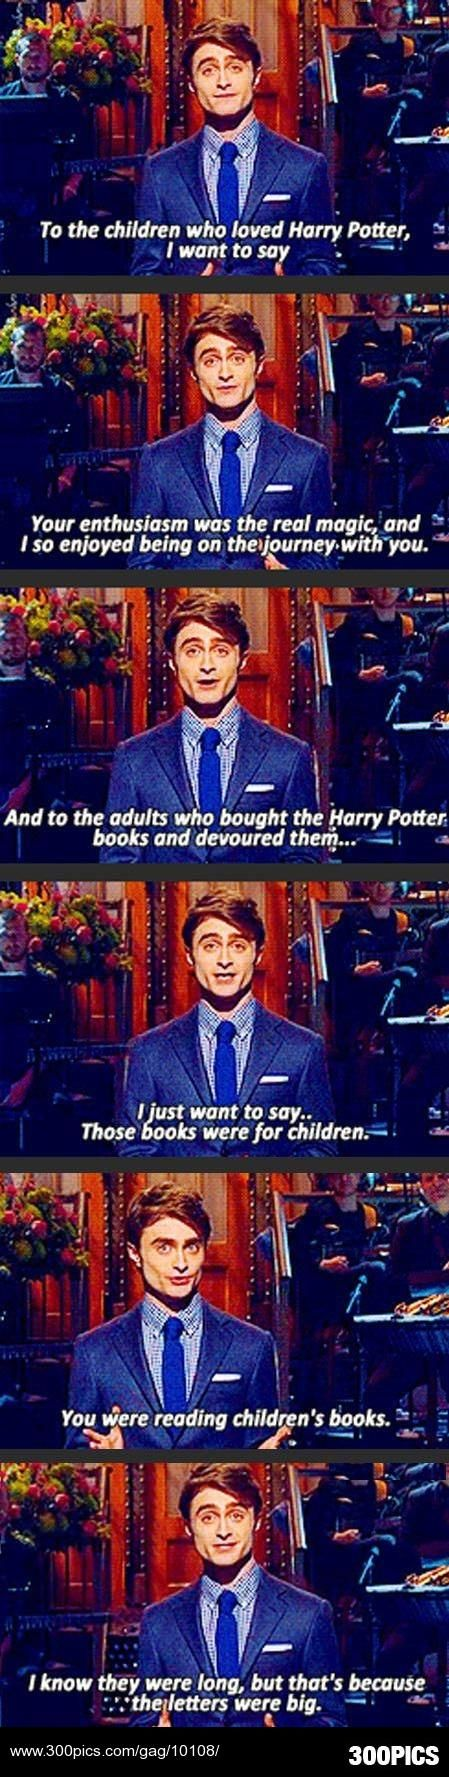 To all the older Harry Potter fans out there - 300Pics